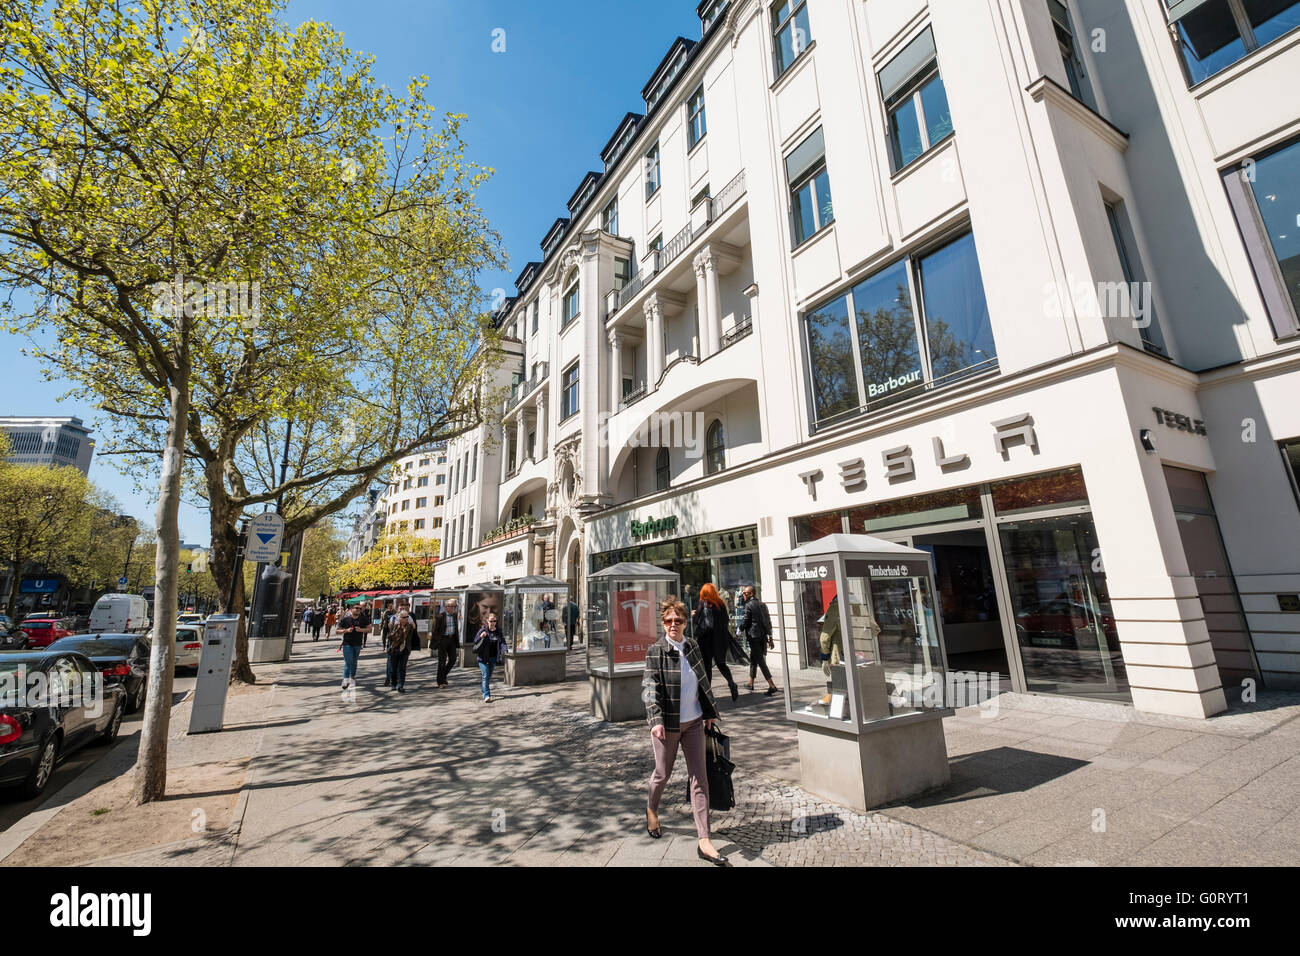 traditional architecture of shops on famous kurfurstendamm kudamm stock photo 103788945 alamy. Black Bedroom Furniture Sets. Home Design Ideas